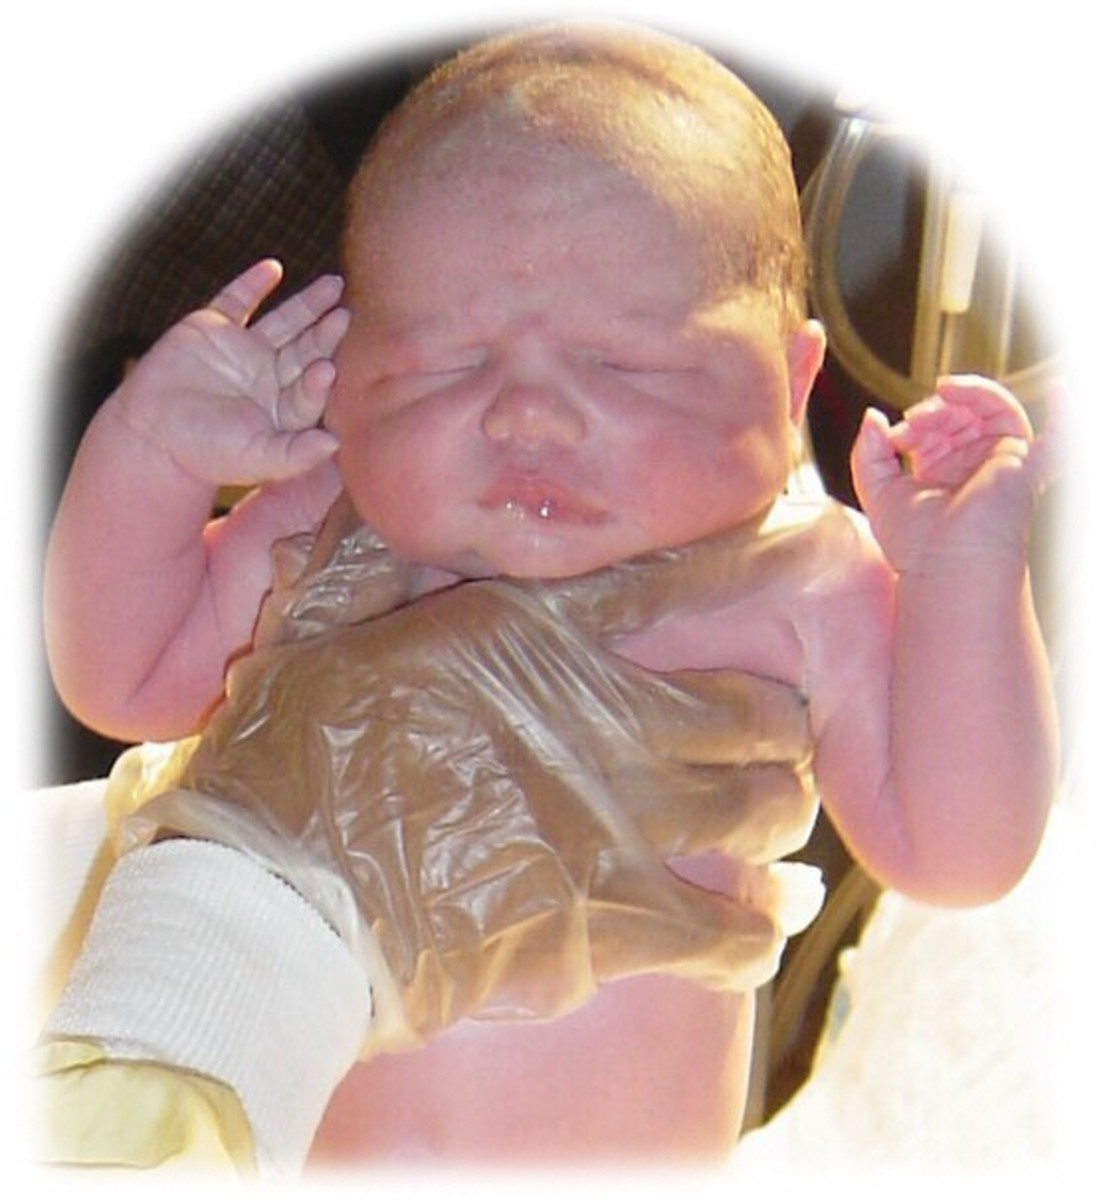 All newborn babies should be monitored for signs of jaundice